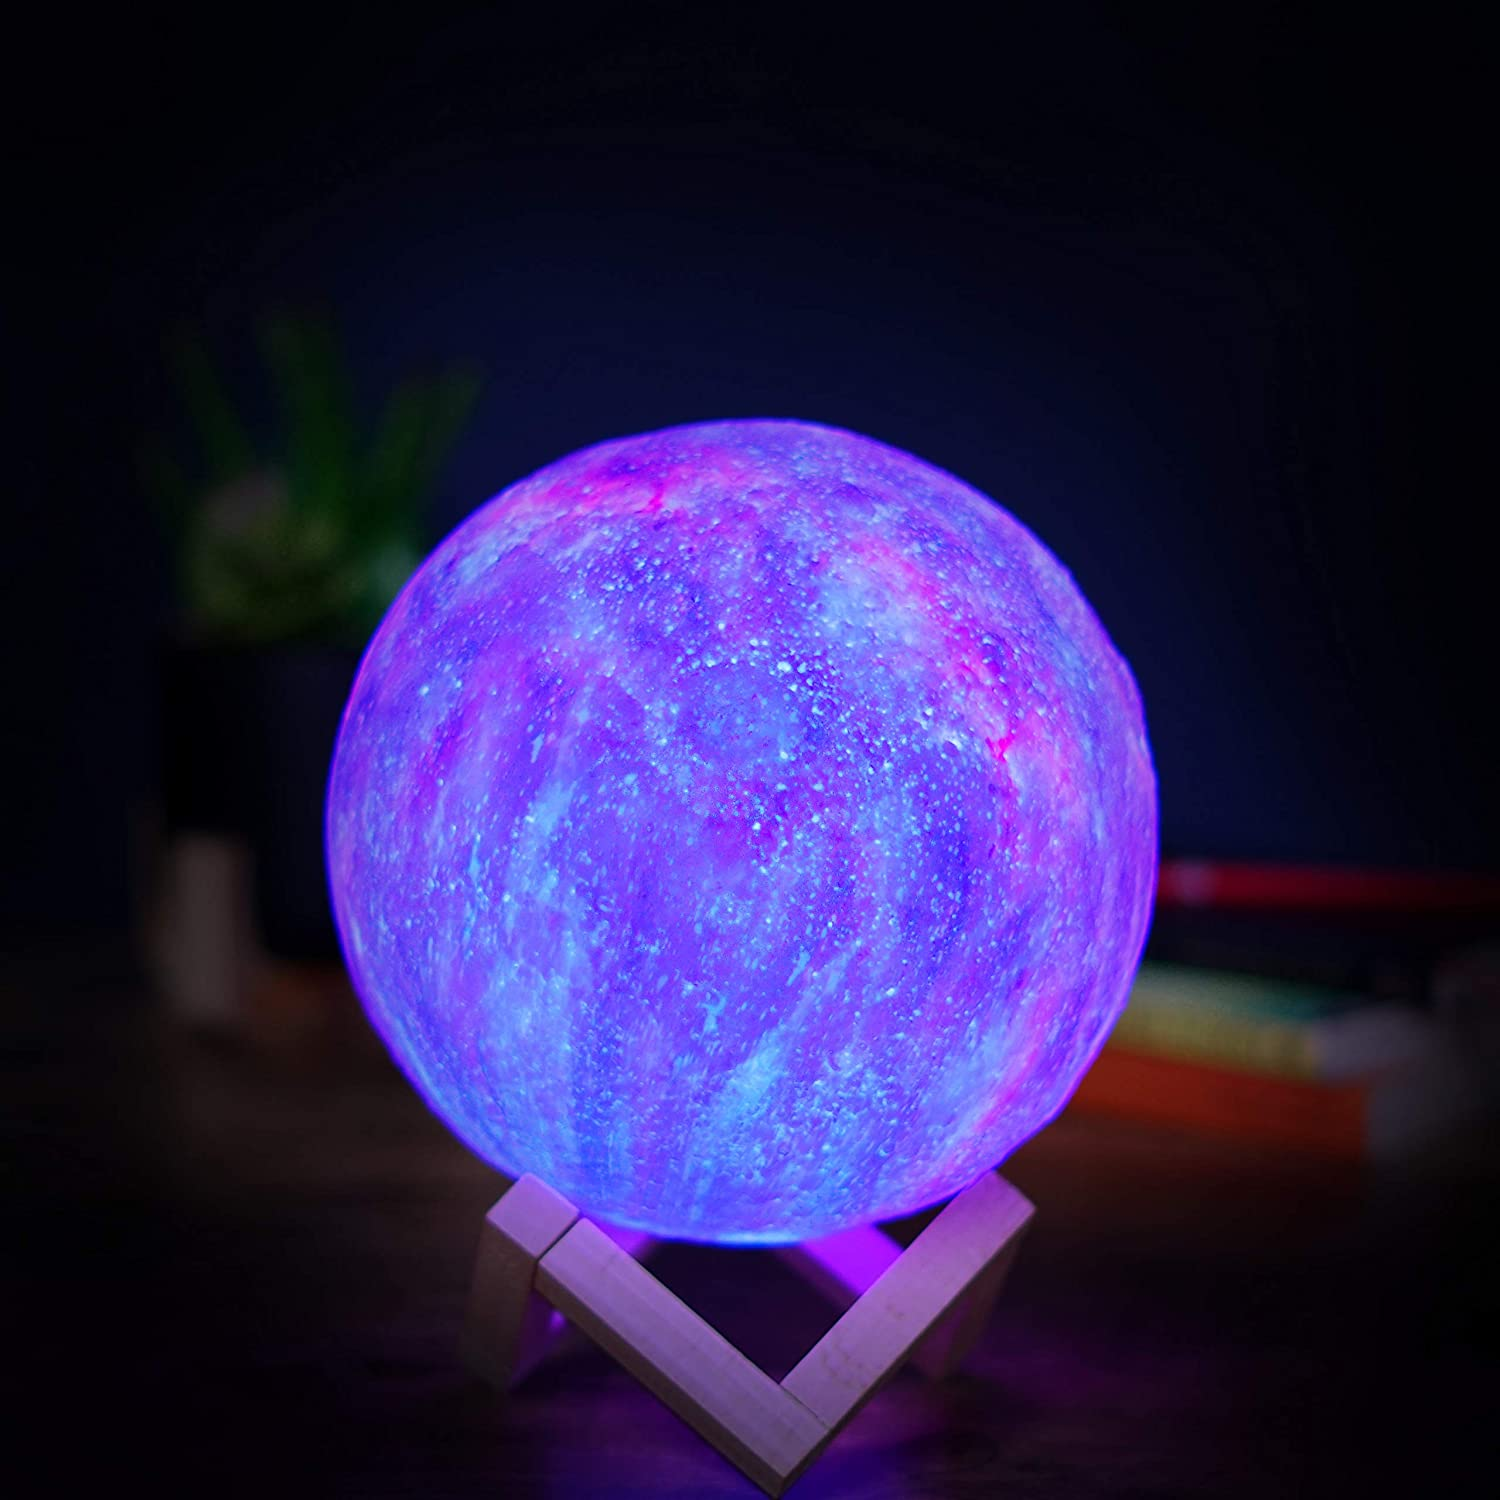 Space Galaxy Moon Lamp Lighting Night LED 3D Printing RGB Colors Remote Control Dimmable Touch Control Brightness USB Charging Rechargeable Home Decorative for Baby Kids Gift with Wooden Stand